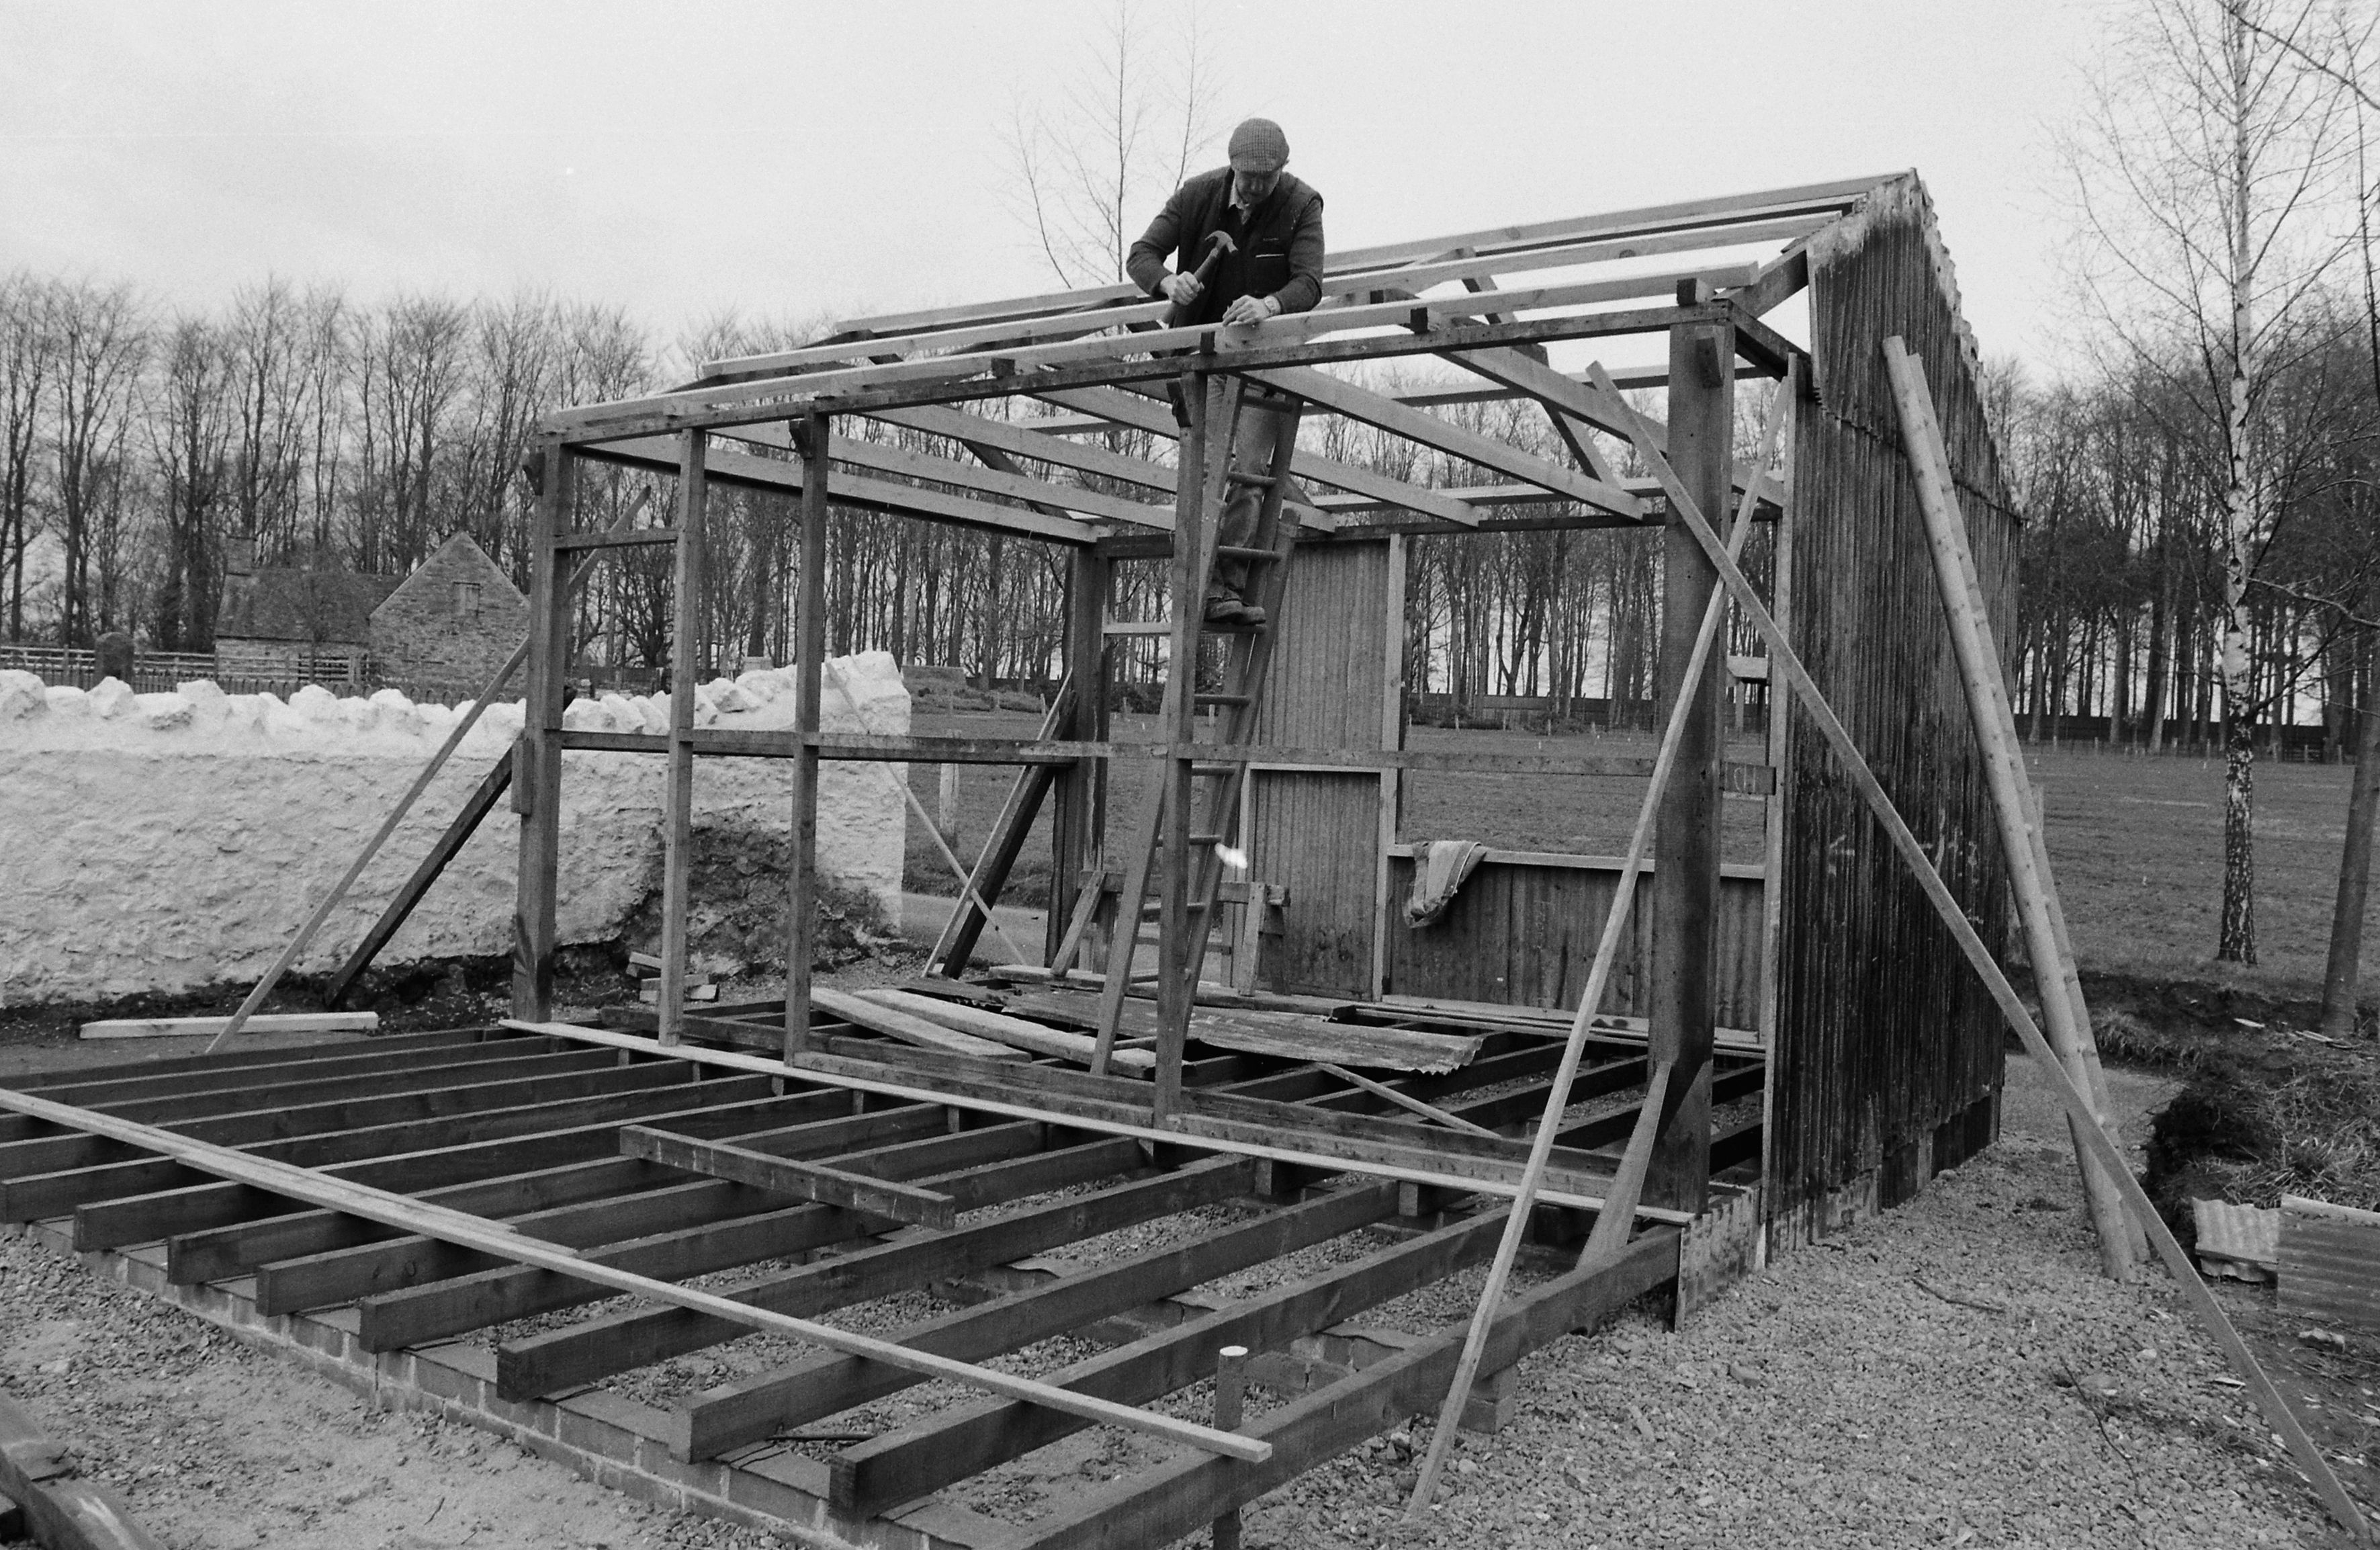 Re-erecting the Saddler's Workshop at St Fagans National Museum of History